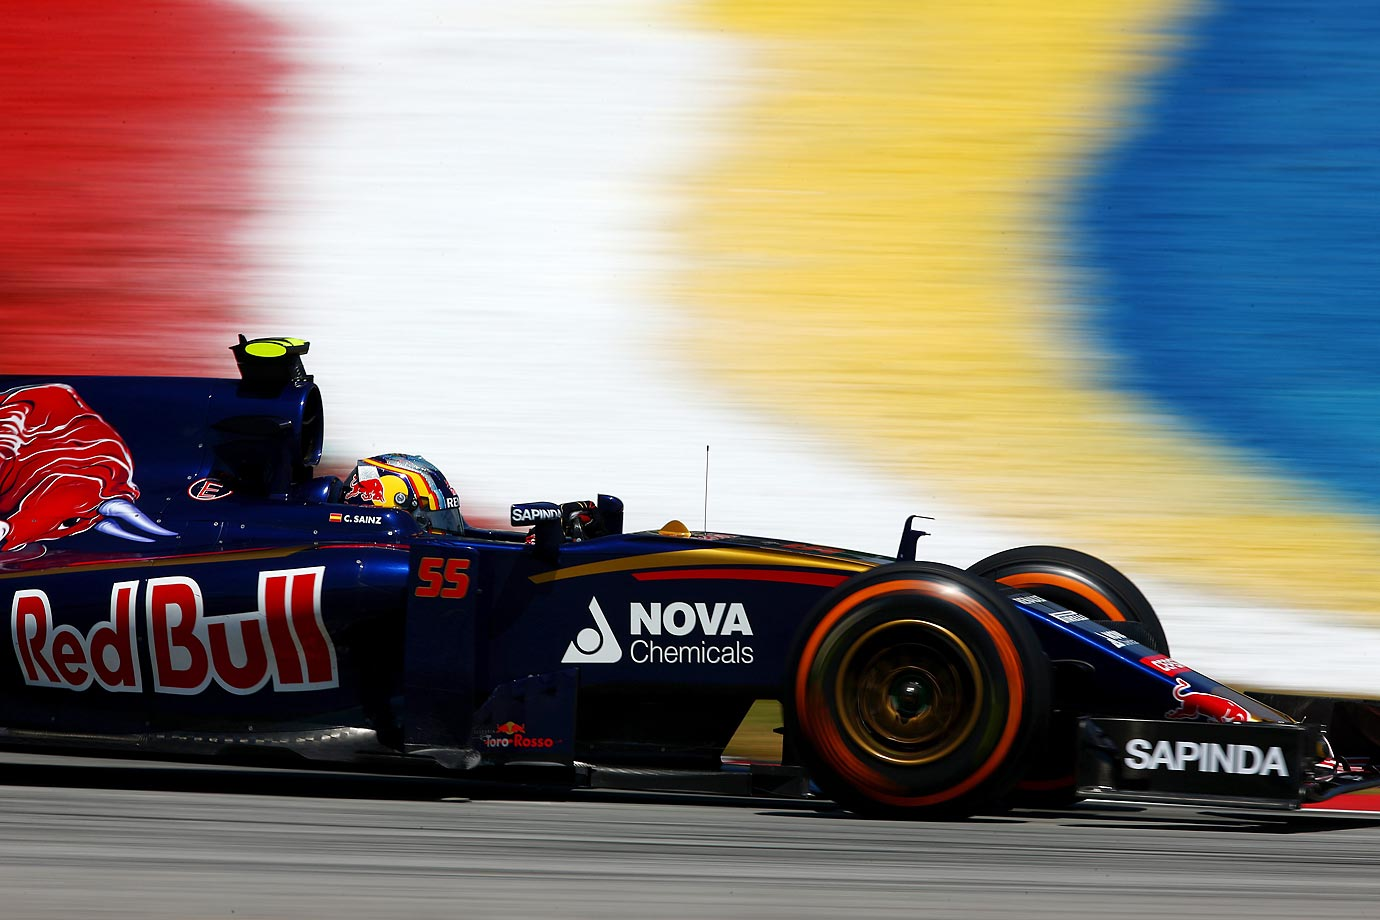 Scuderia Toro Rosso driver Carlos Sainz of Spain speeds through practice laps ahead of last weekend's Malaysia Formula One Grand Prix.